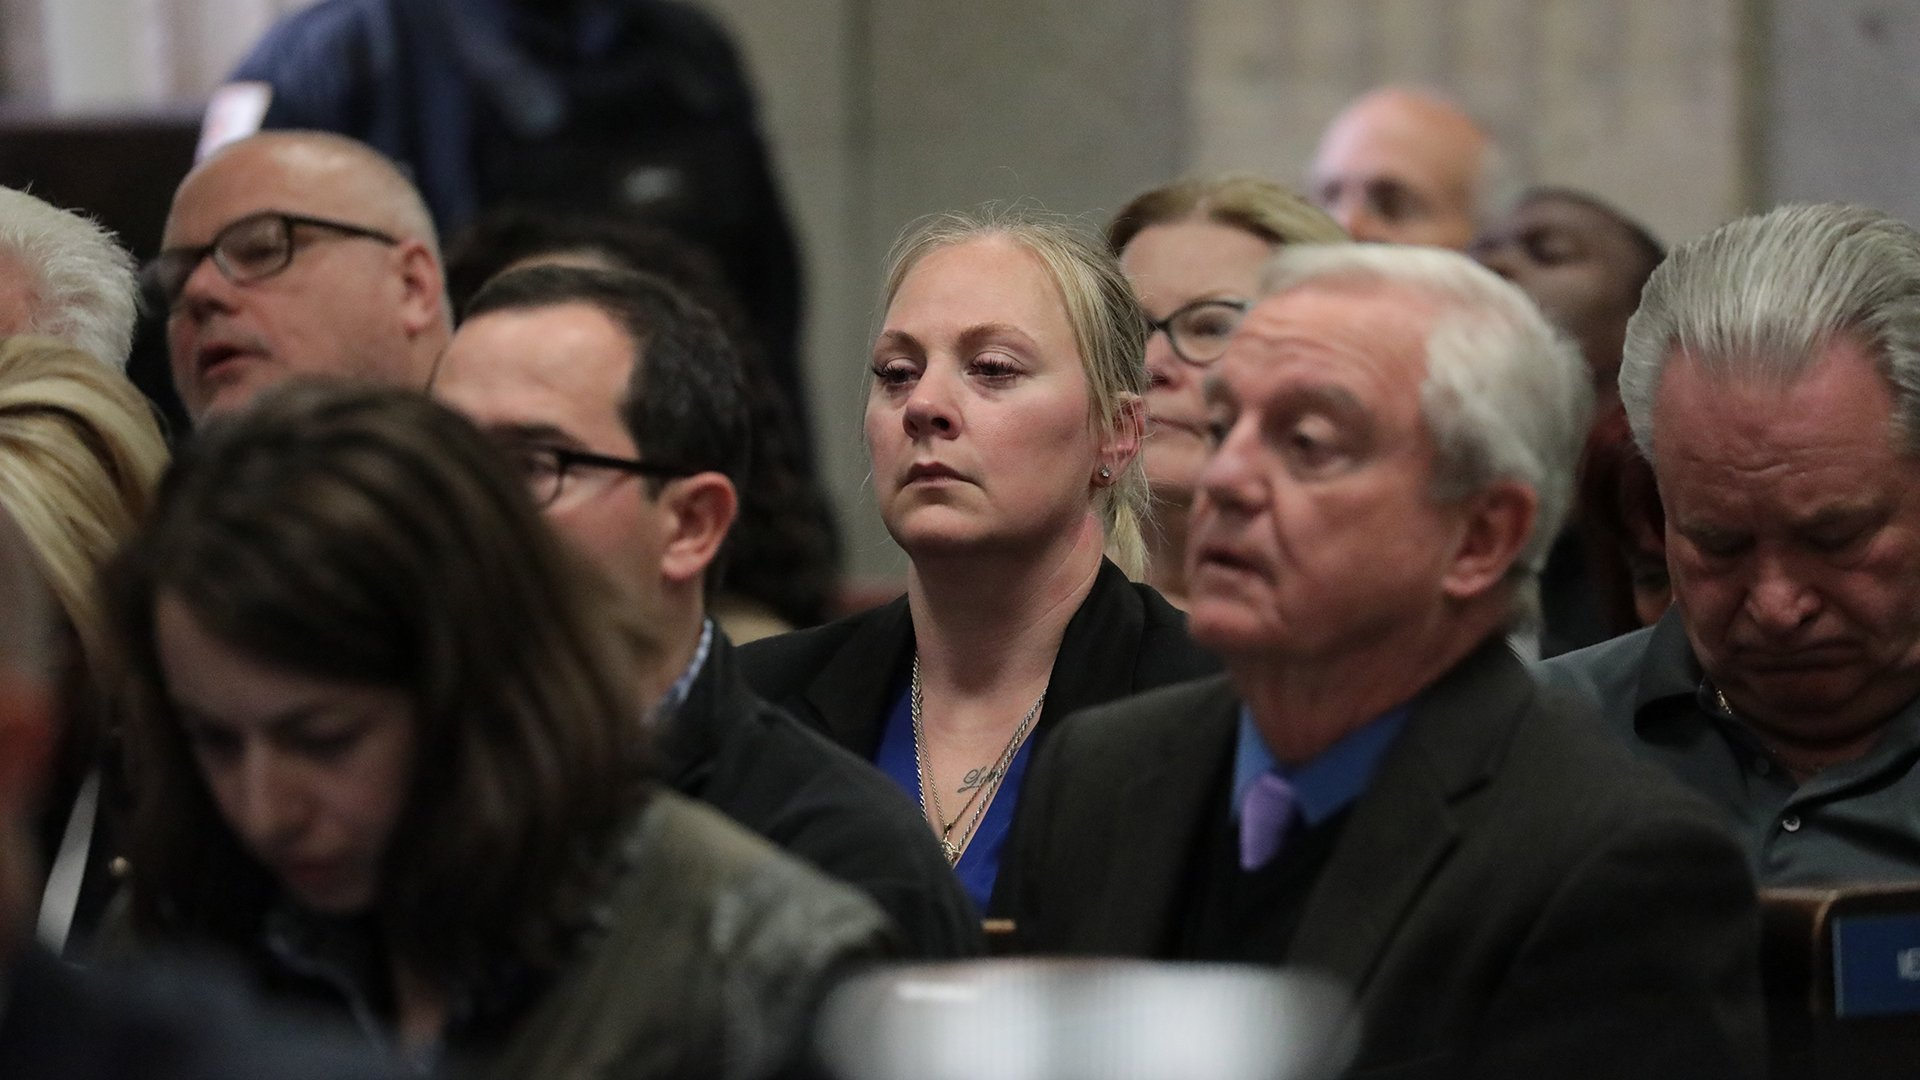 Tiffany Van Dyke, center, watches as verdicts are read in the murder trial of her husband, Chicago police Officer Jason Van Dyke, on Friday, Oct. 5, 2018. (Antonio Perez / Chicago Tribune / Pool)